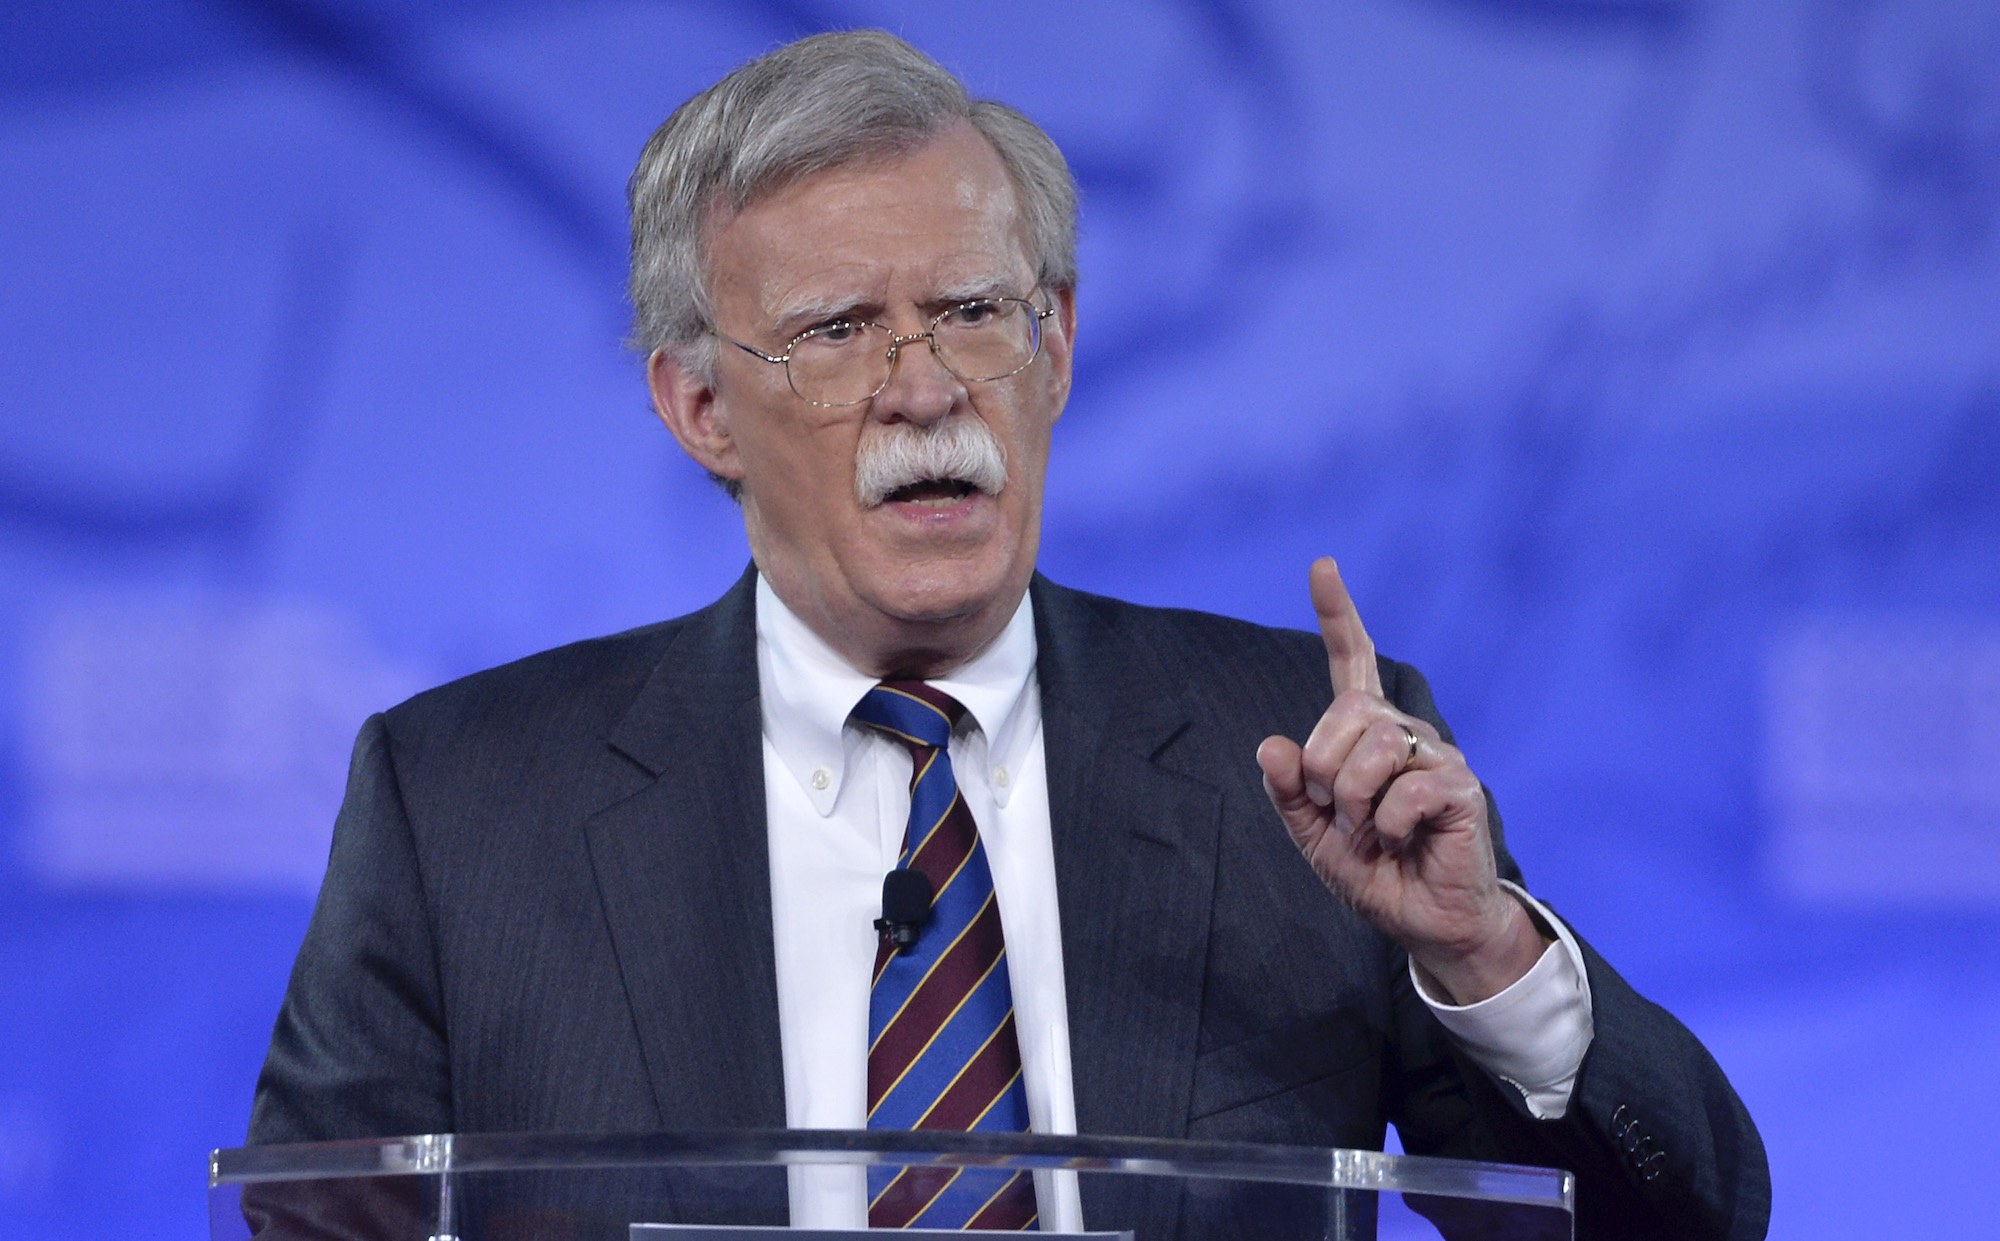 U.S. Files Breach of Contract Suit Against Former NSA John Bolton in Attempt to Block Publication of his Tell-All Book